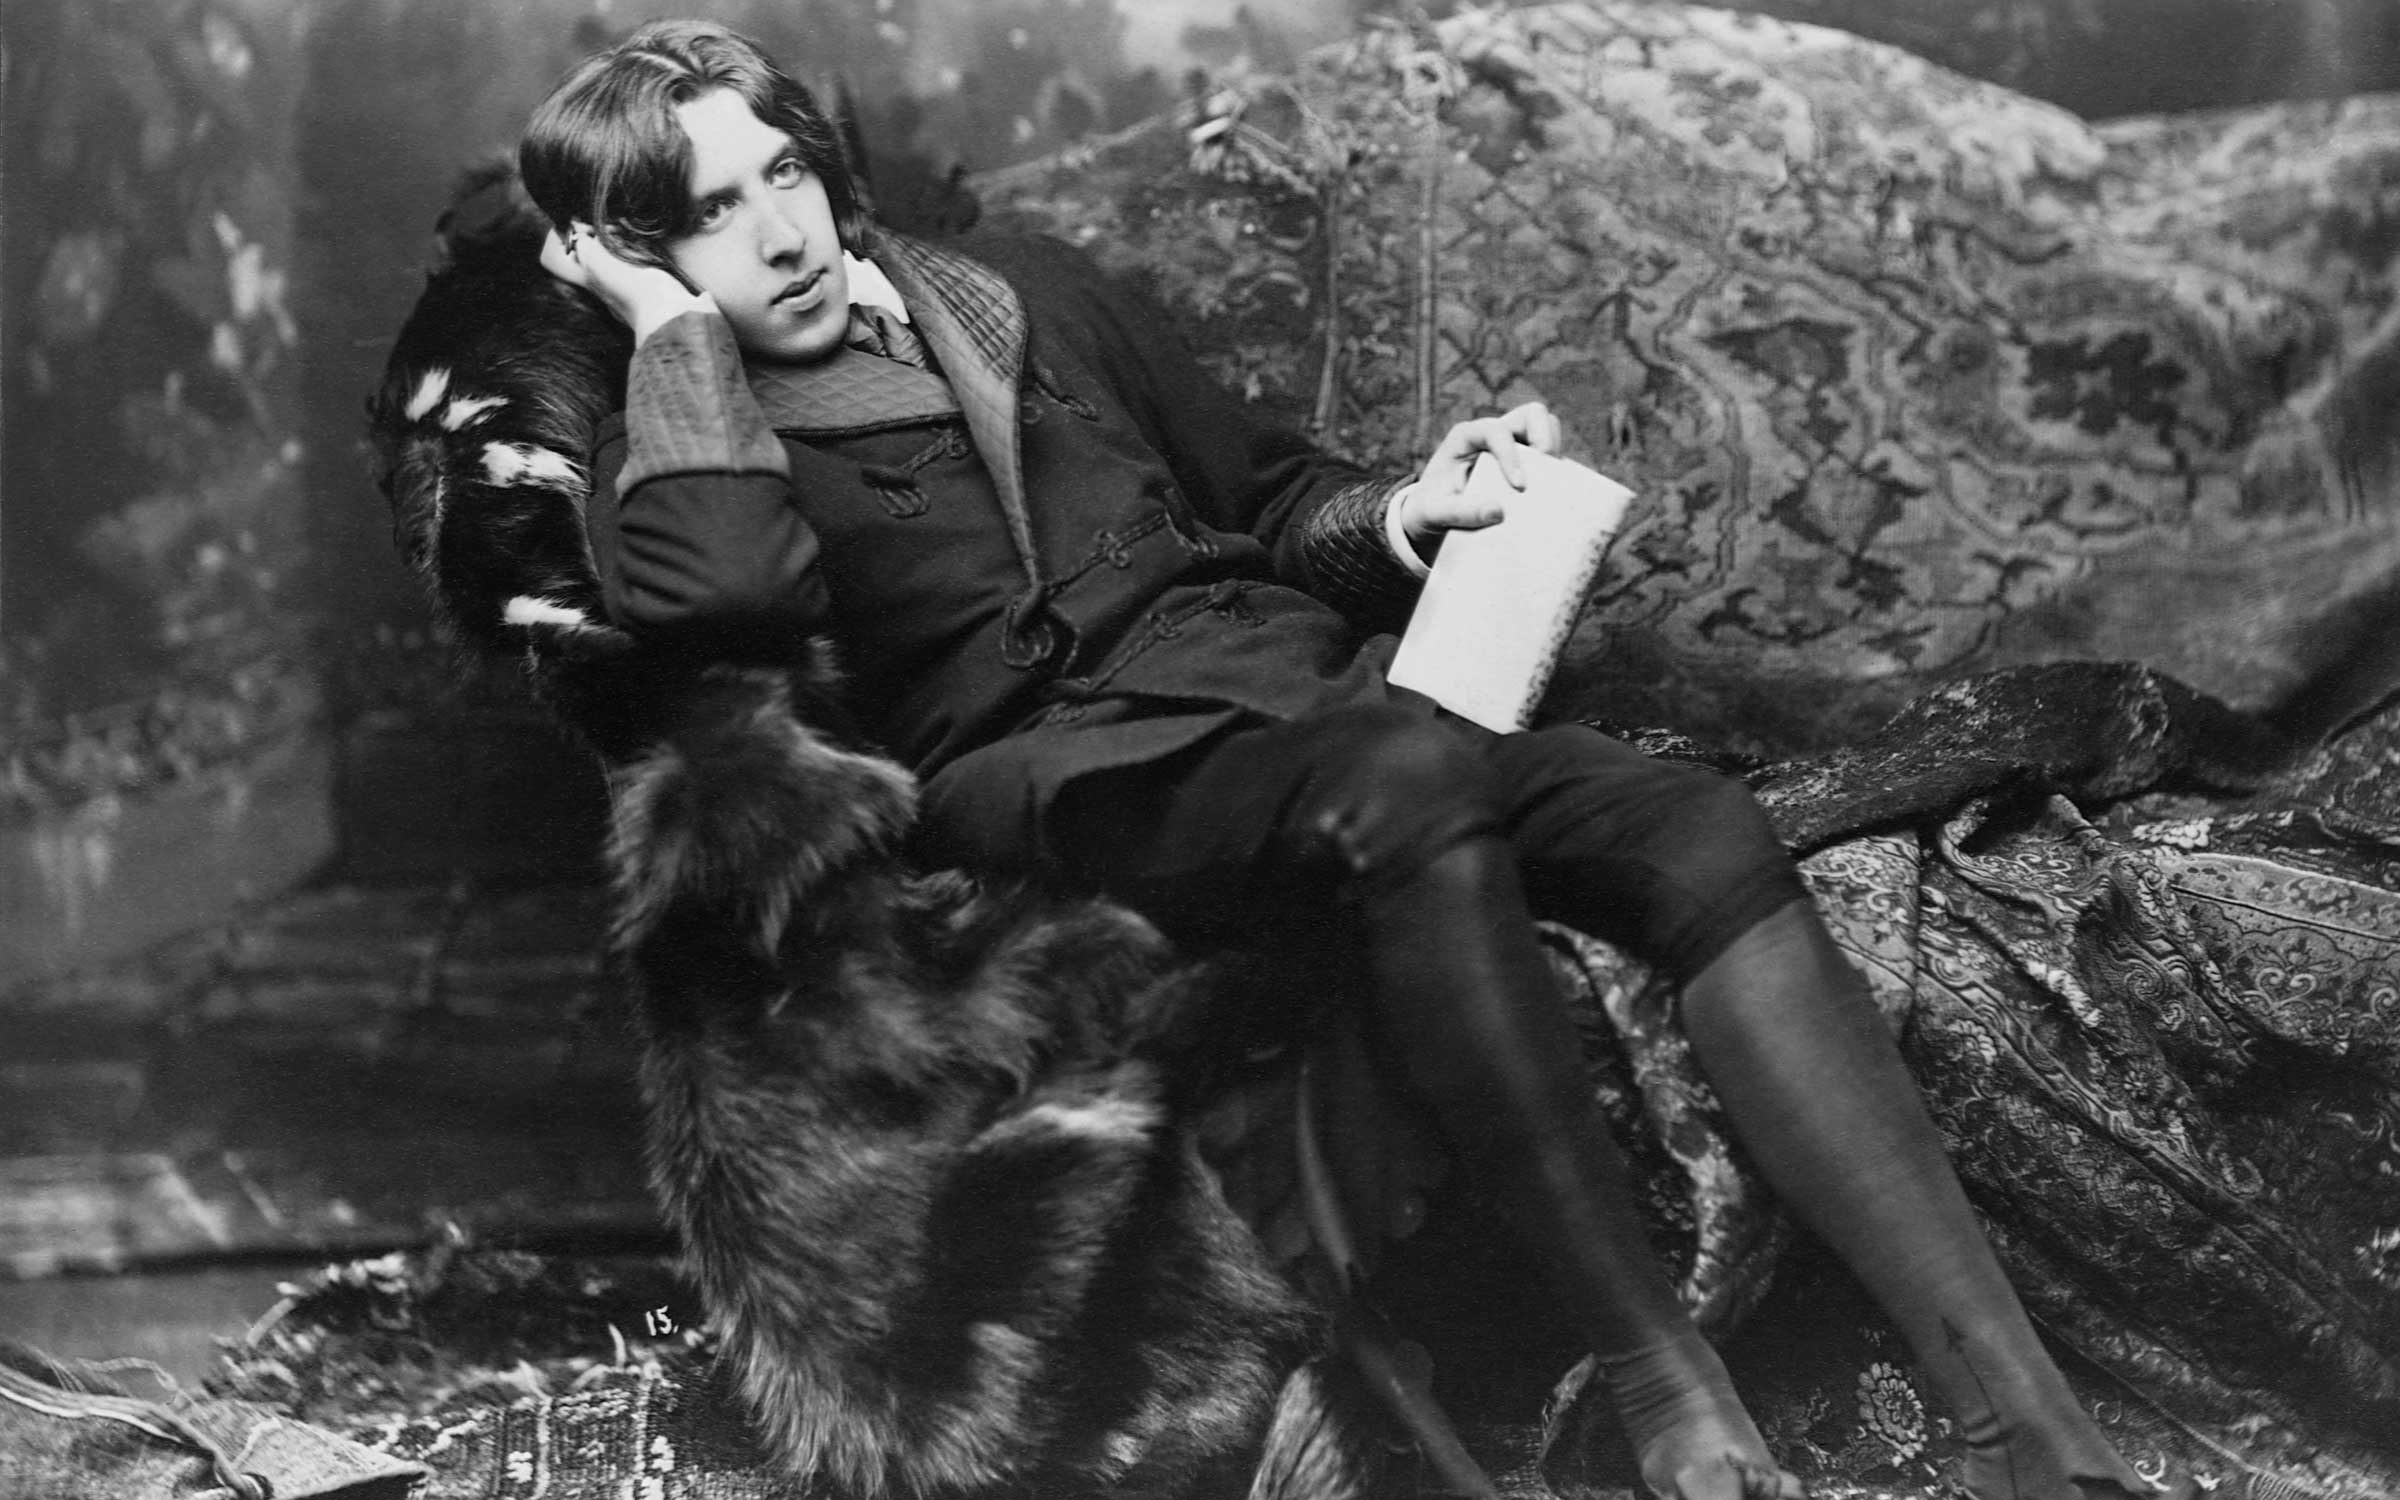 Poet and novelist, Oscar Wilde, (1854-1900), in his typical costume of a velvet robe and black silk stockings. Wilde was one of the leading dandies of the Victorian era. Credit: CORBIS/Corbis via Getty Images